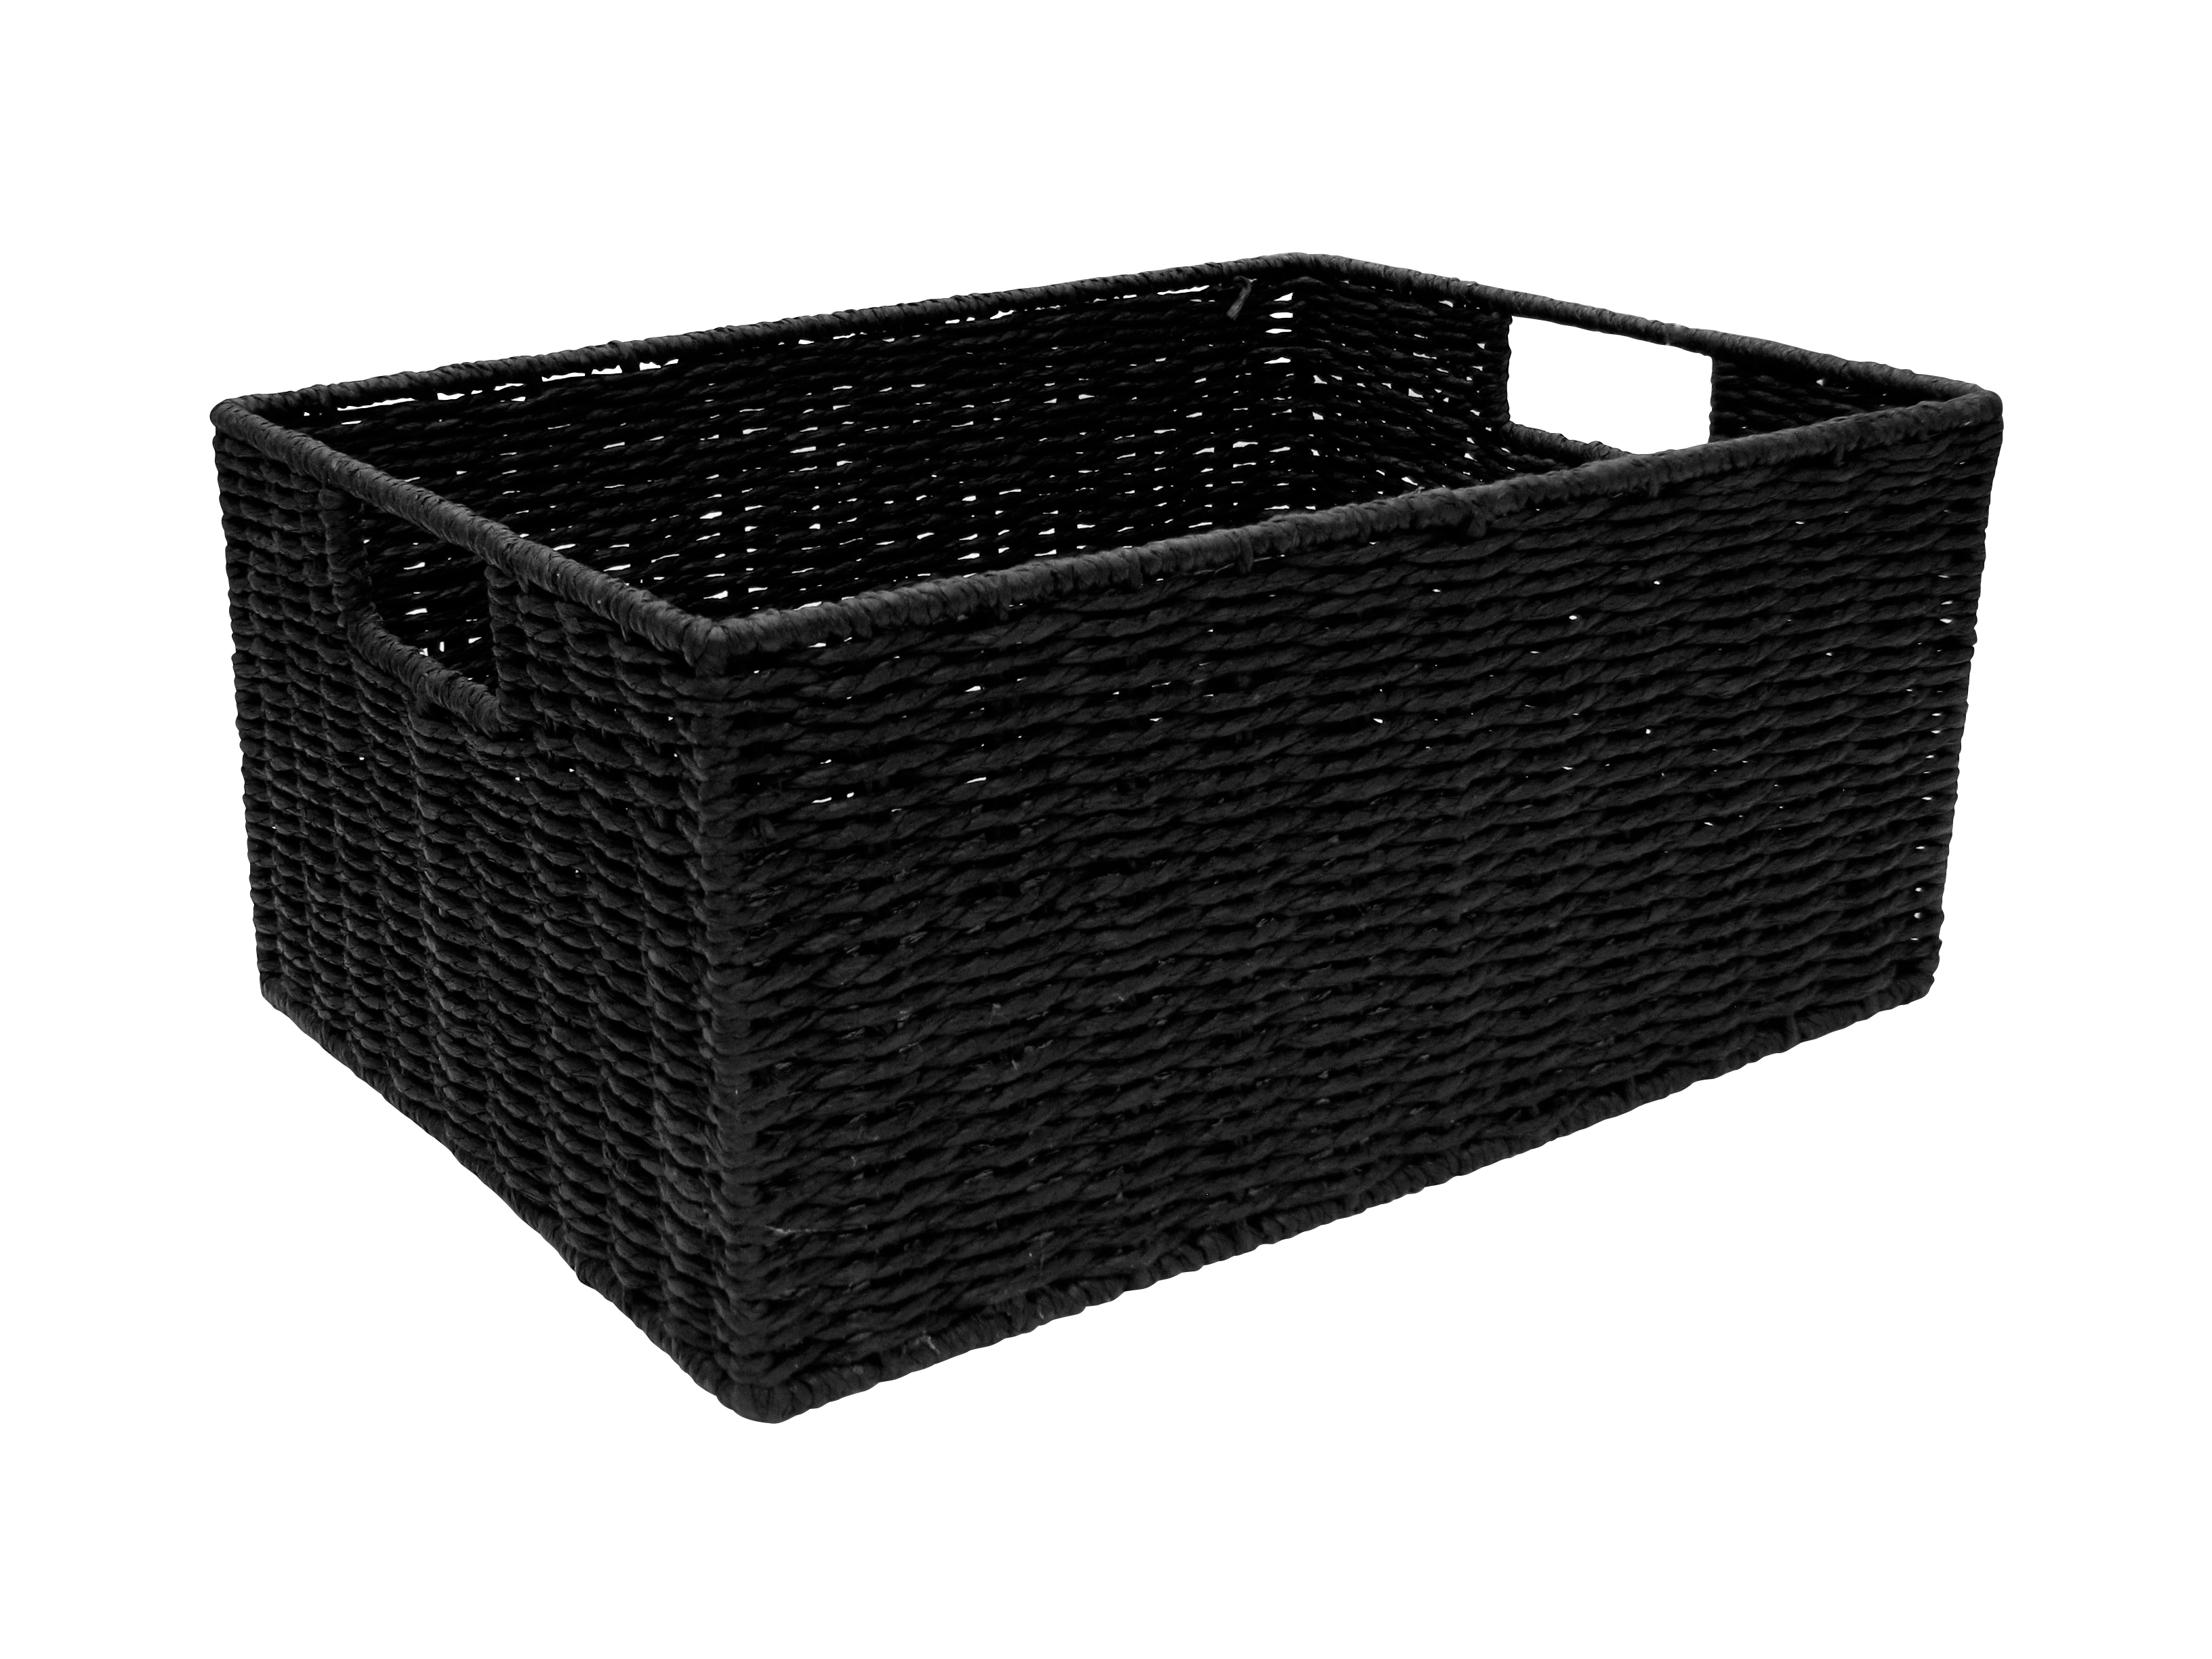 Pastiche Rope Basket Large From Storage Box